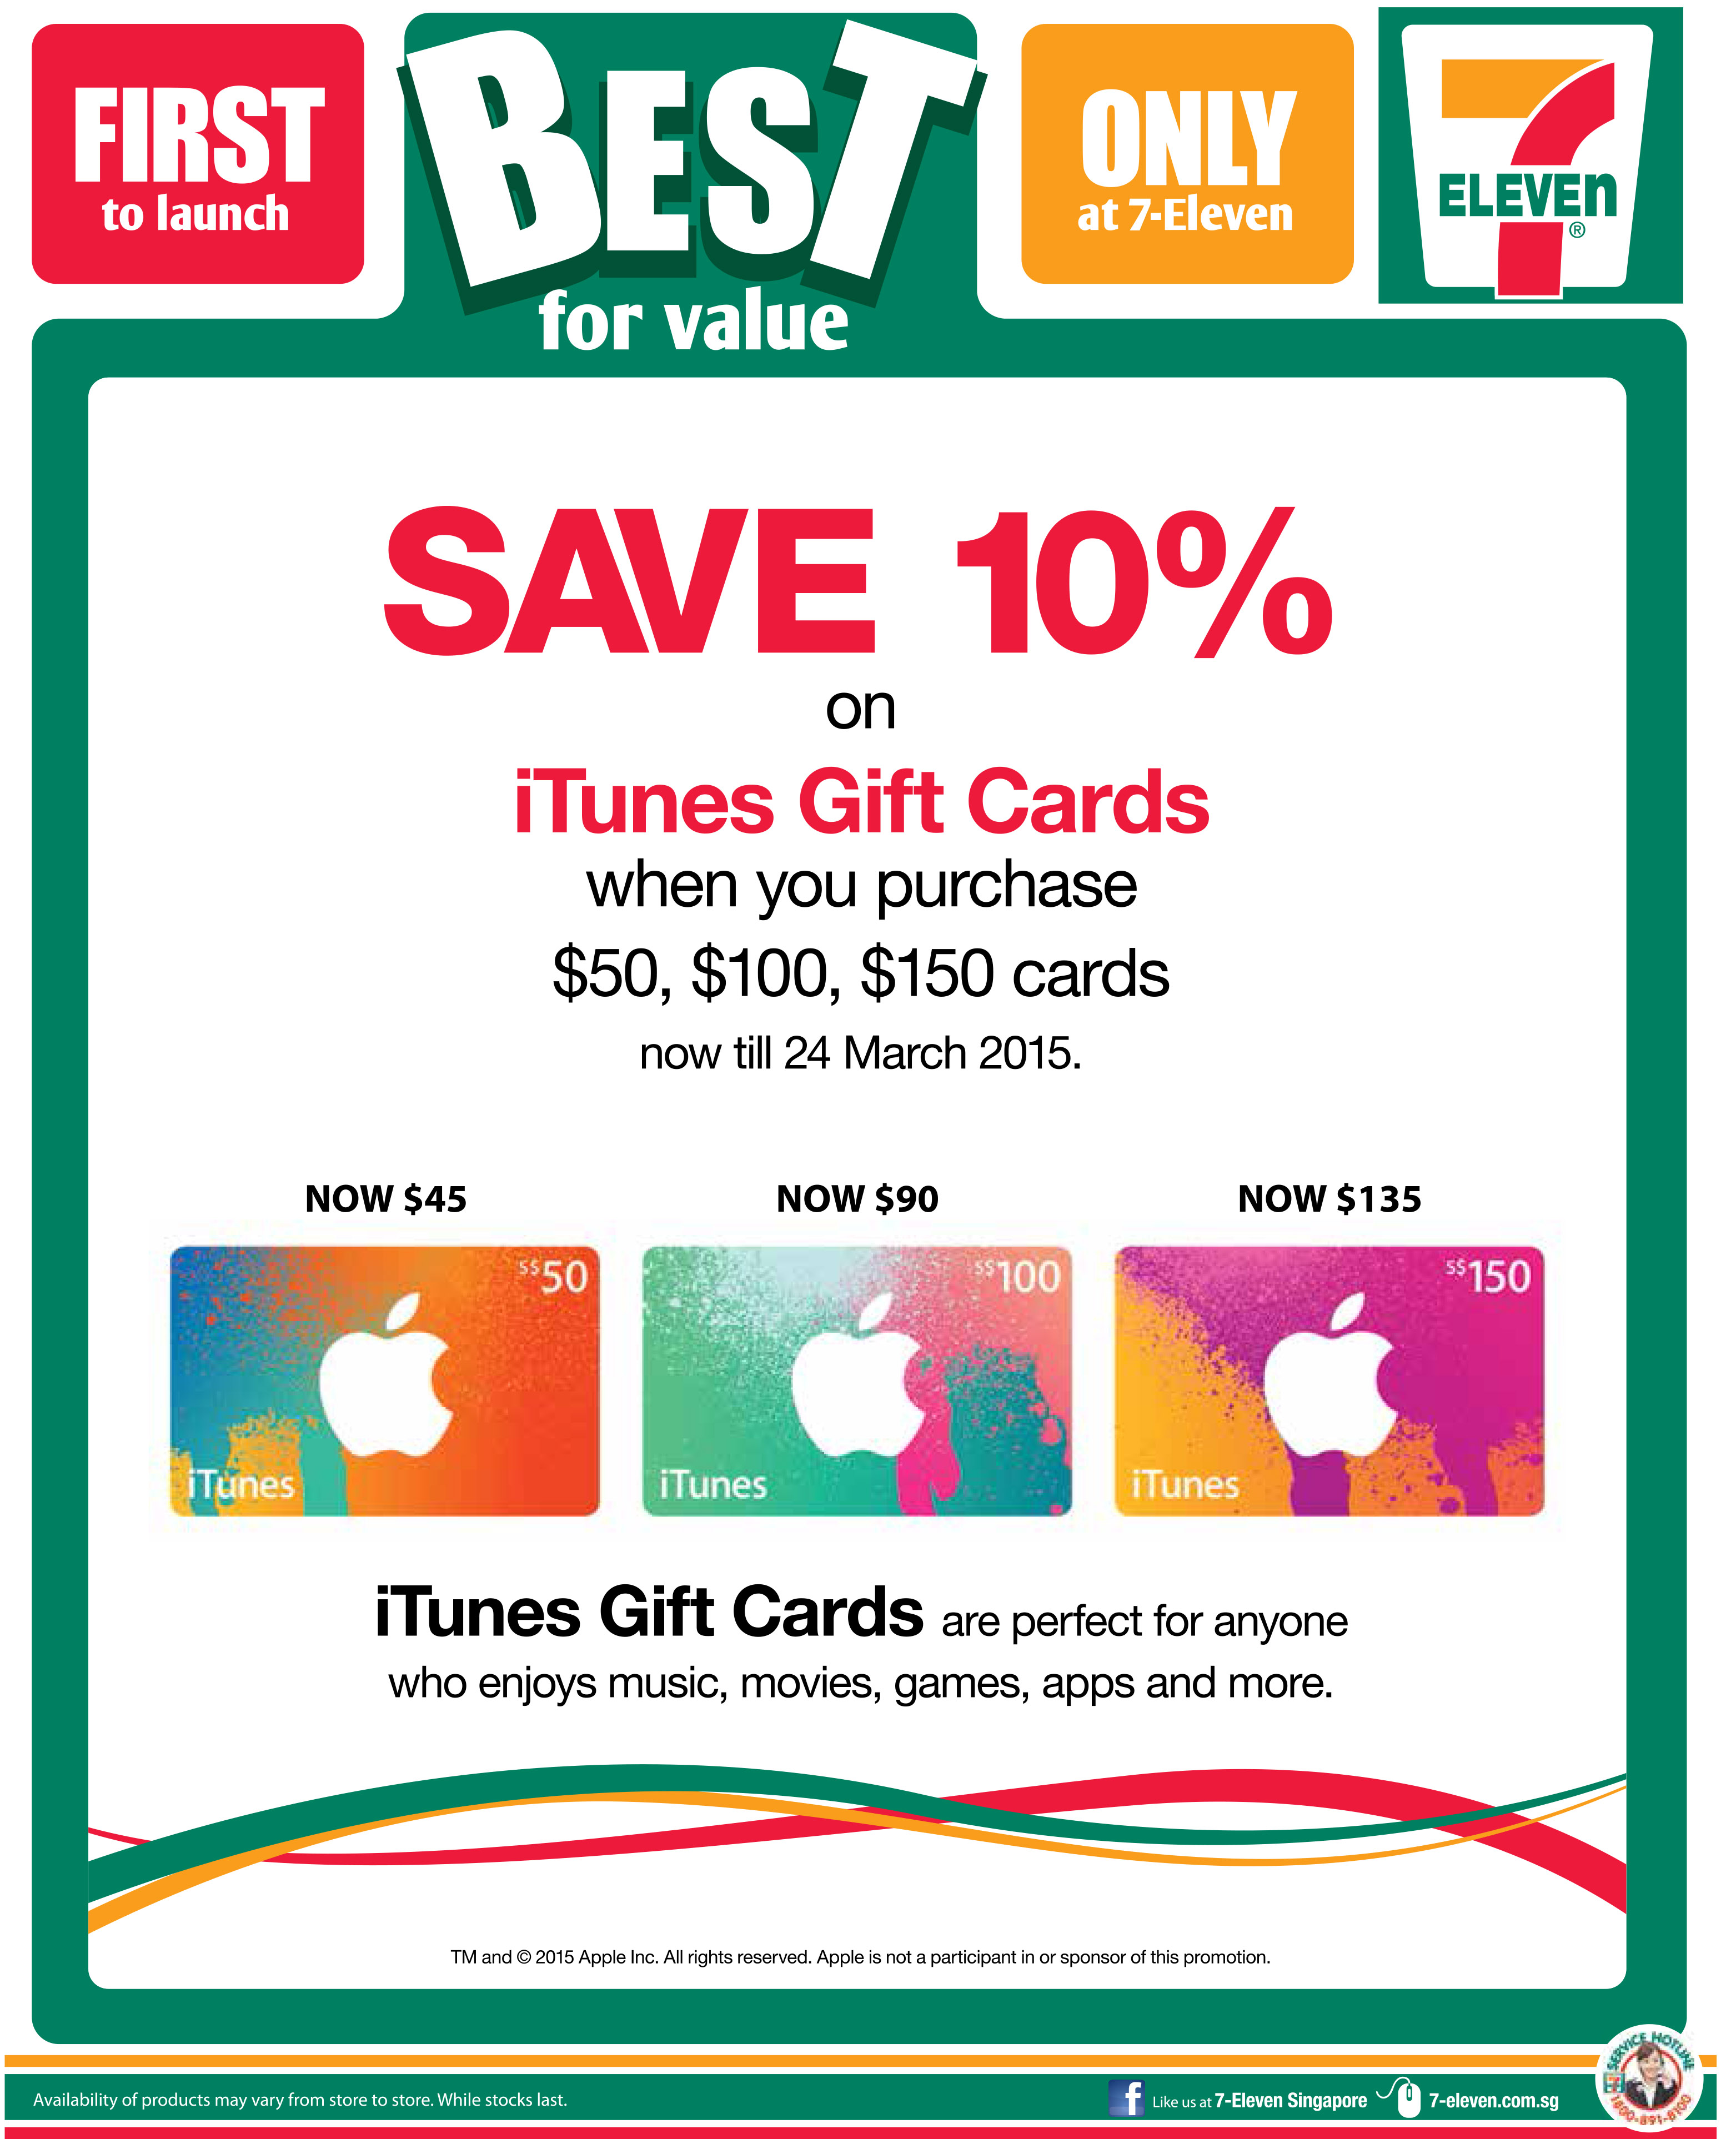 Save 10% on iTunes Gift Cards @ 7-11 Till 24 Mar. 2015 -